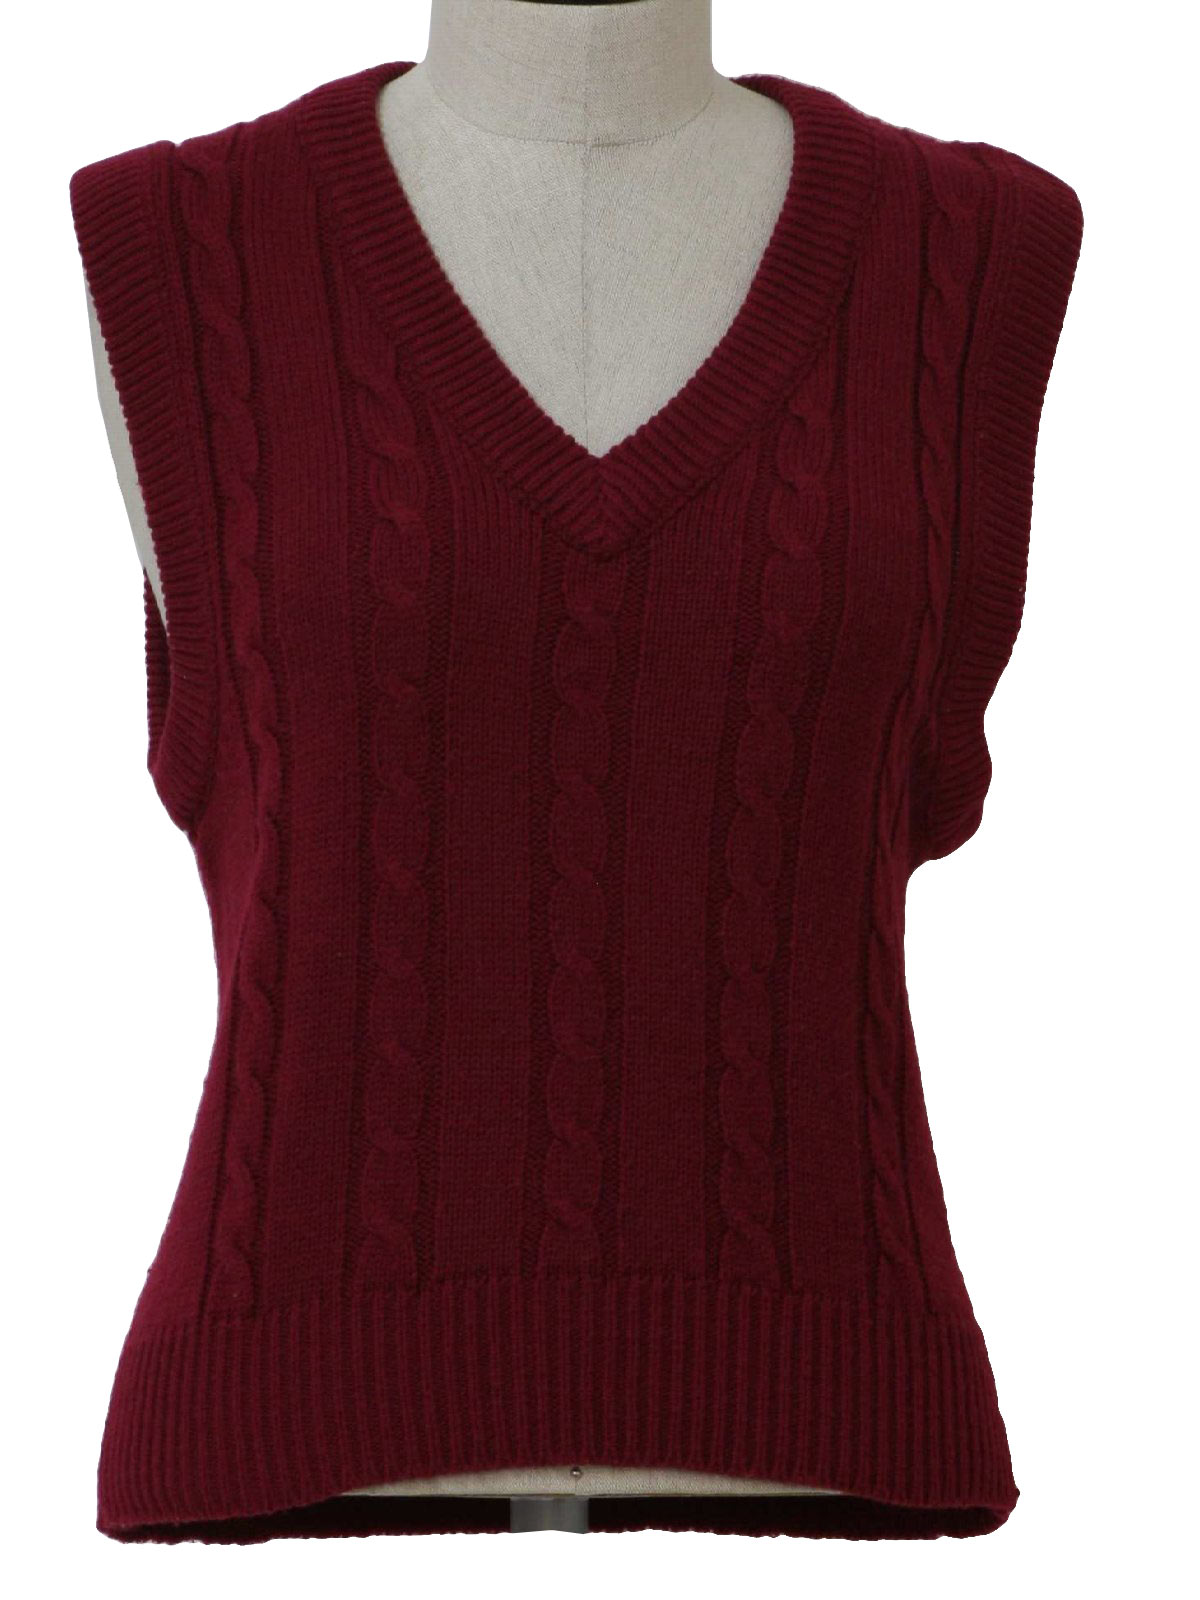 Knitting Pattern Cardigan Vest : knitted vest pattern for women